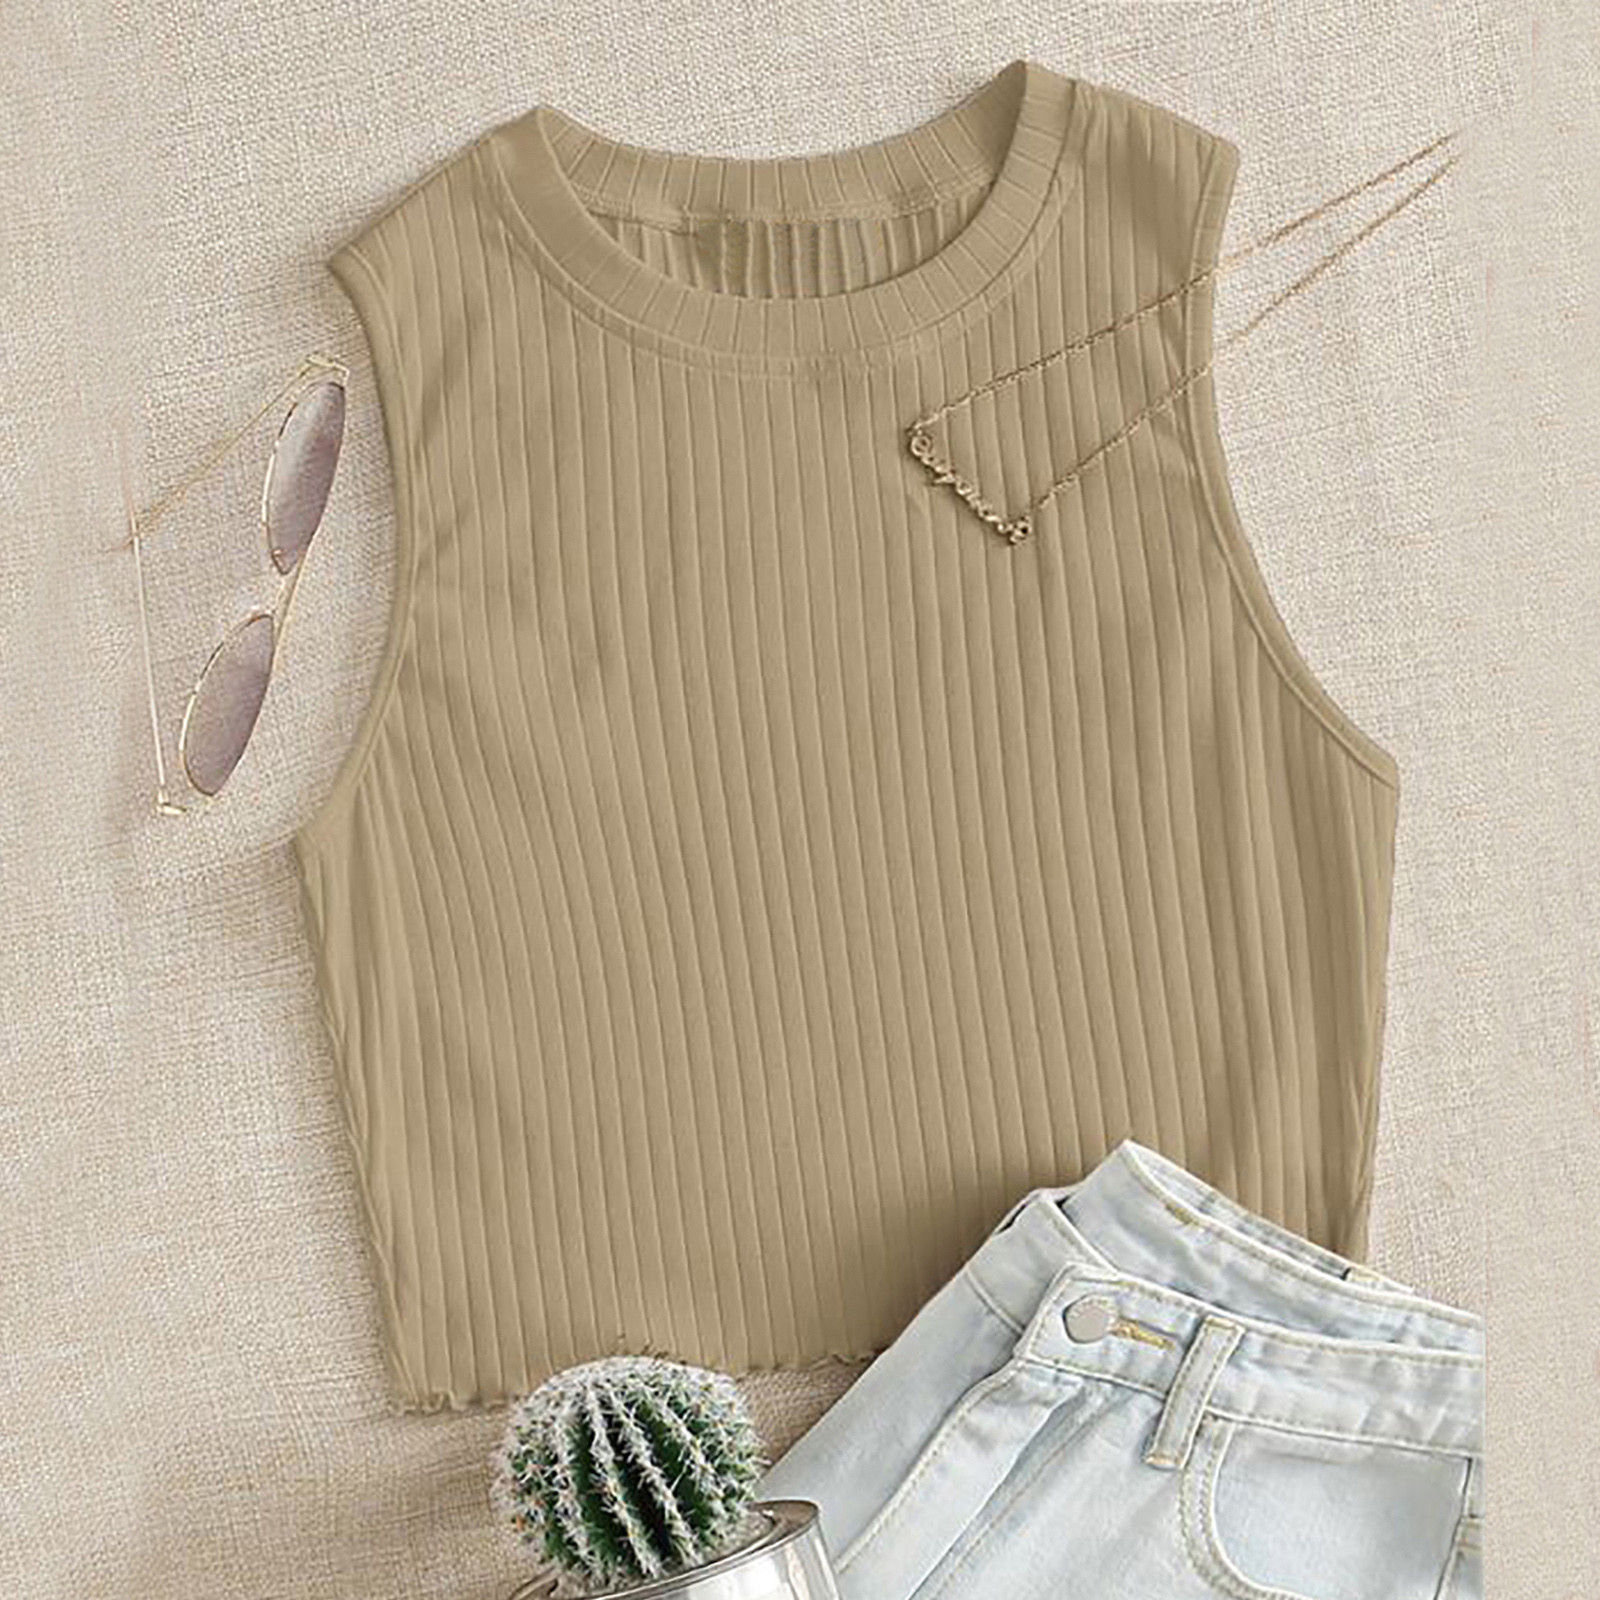 Summer Tops Wearing Crop-Top O-Neck Stripes Solid-Color Casual Sleeveless Blusas Daily